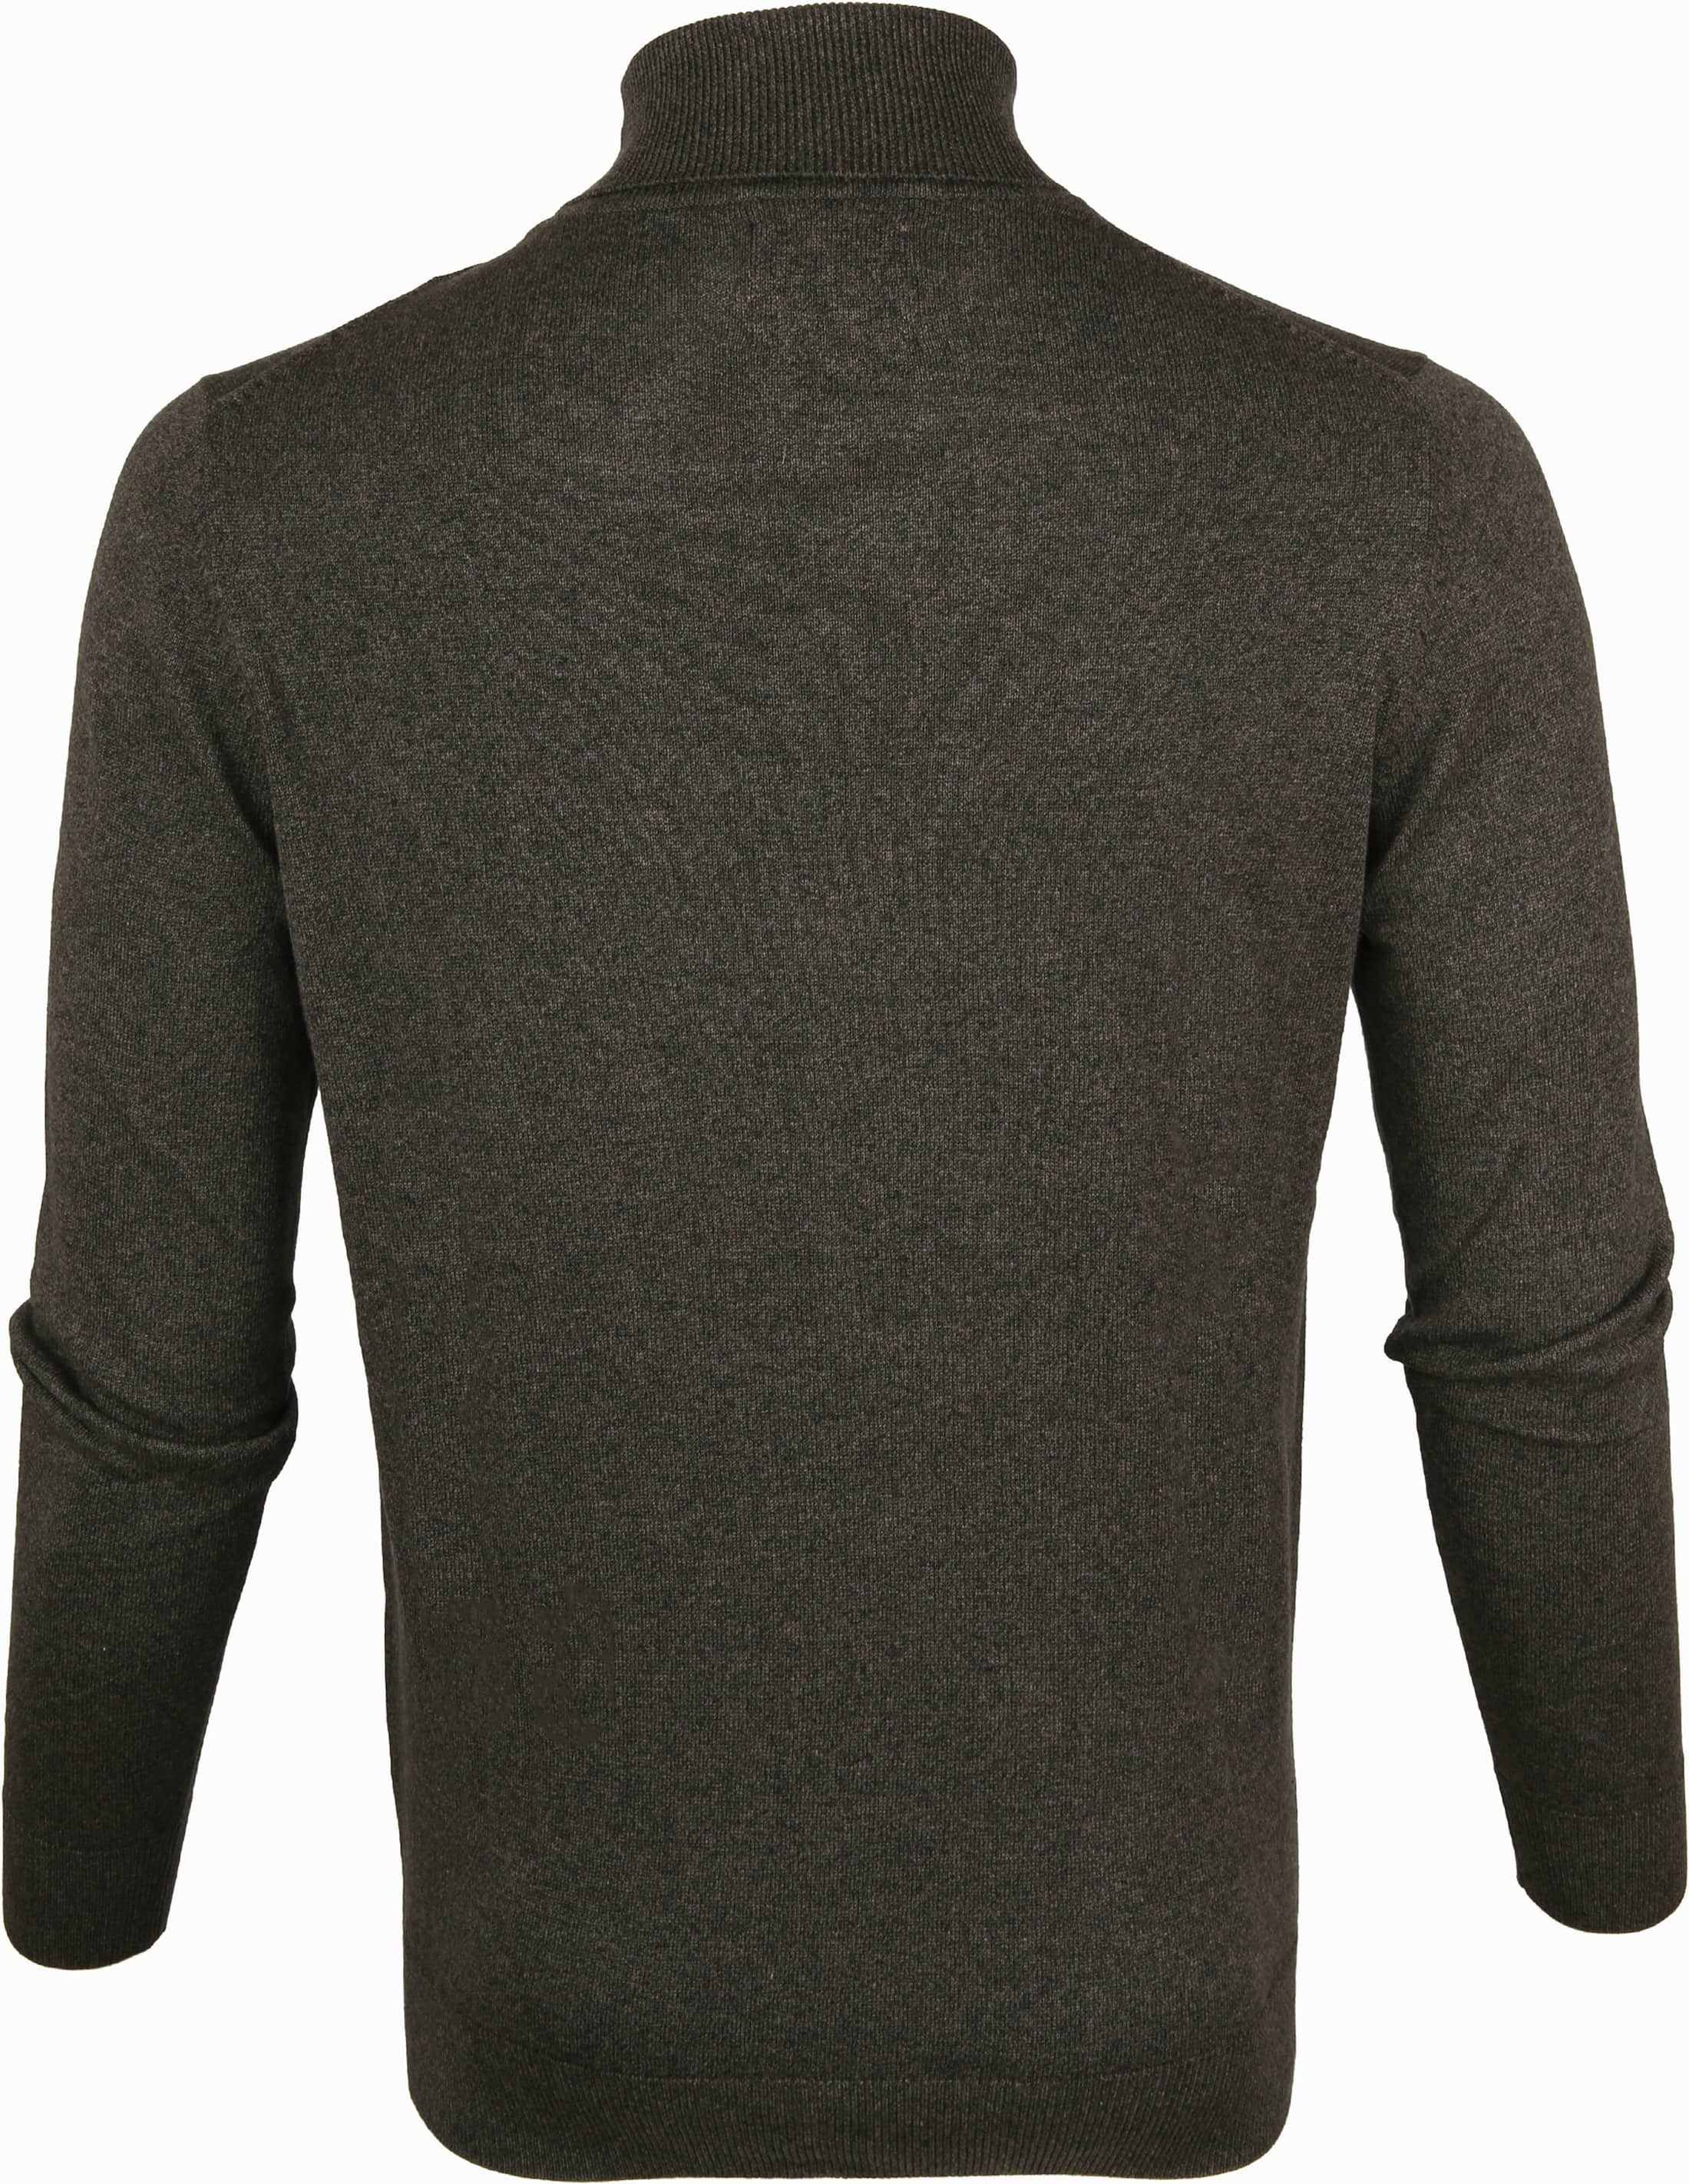 Suitable Cotton Turtleneck Kenjio Dark Green foto 2